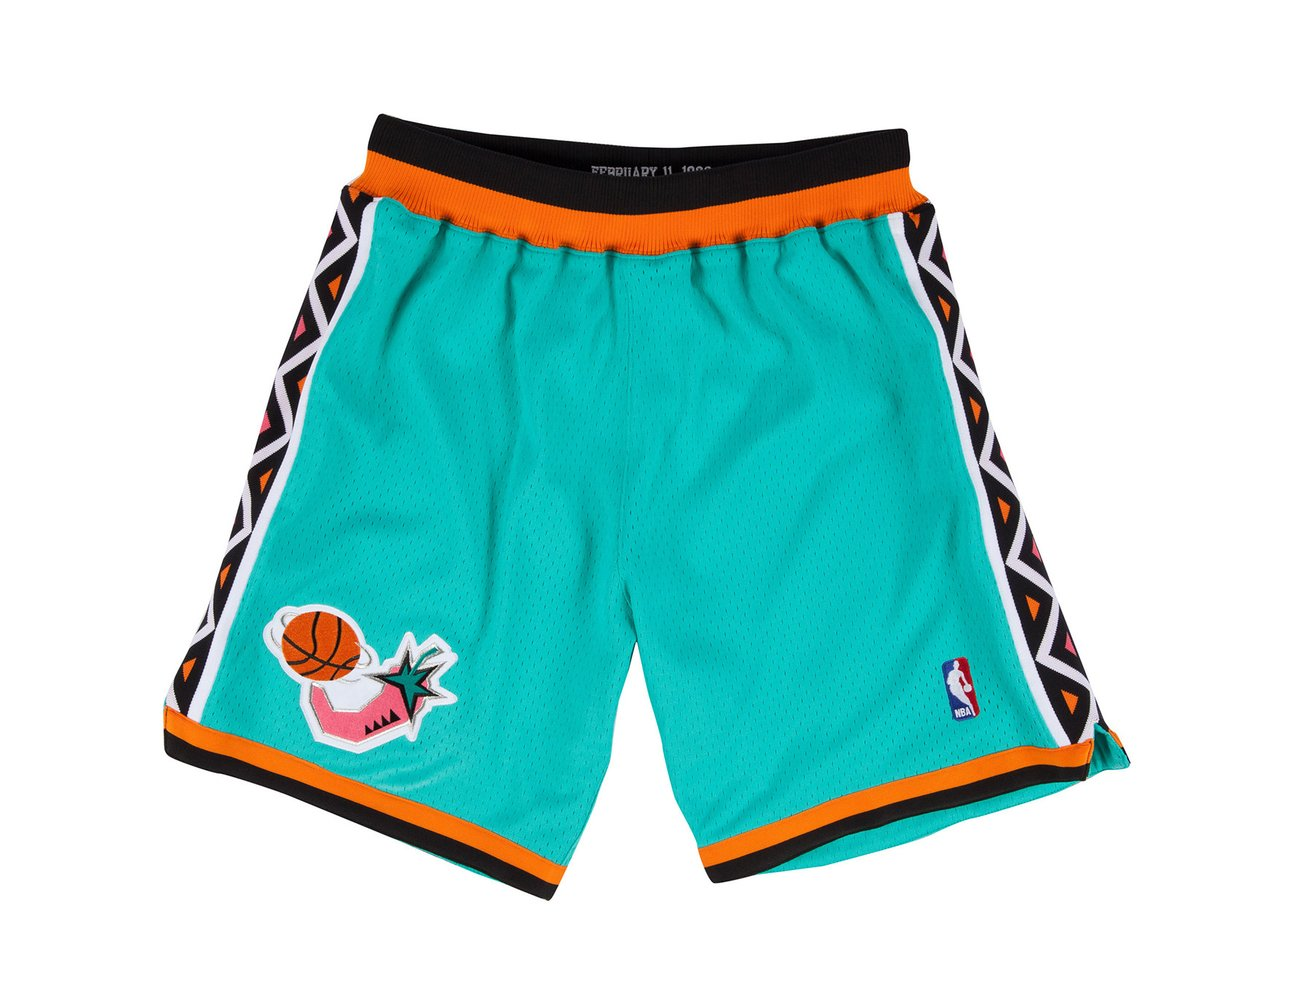 Trophy Room Now Stocked With Classic Authentic Mj Shorts